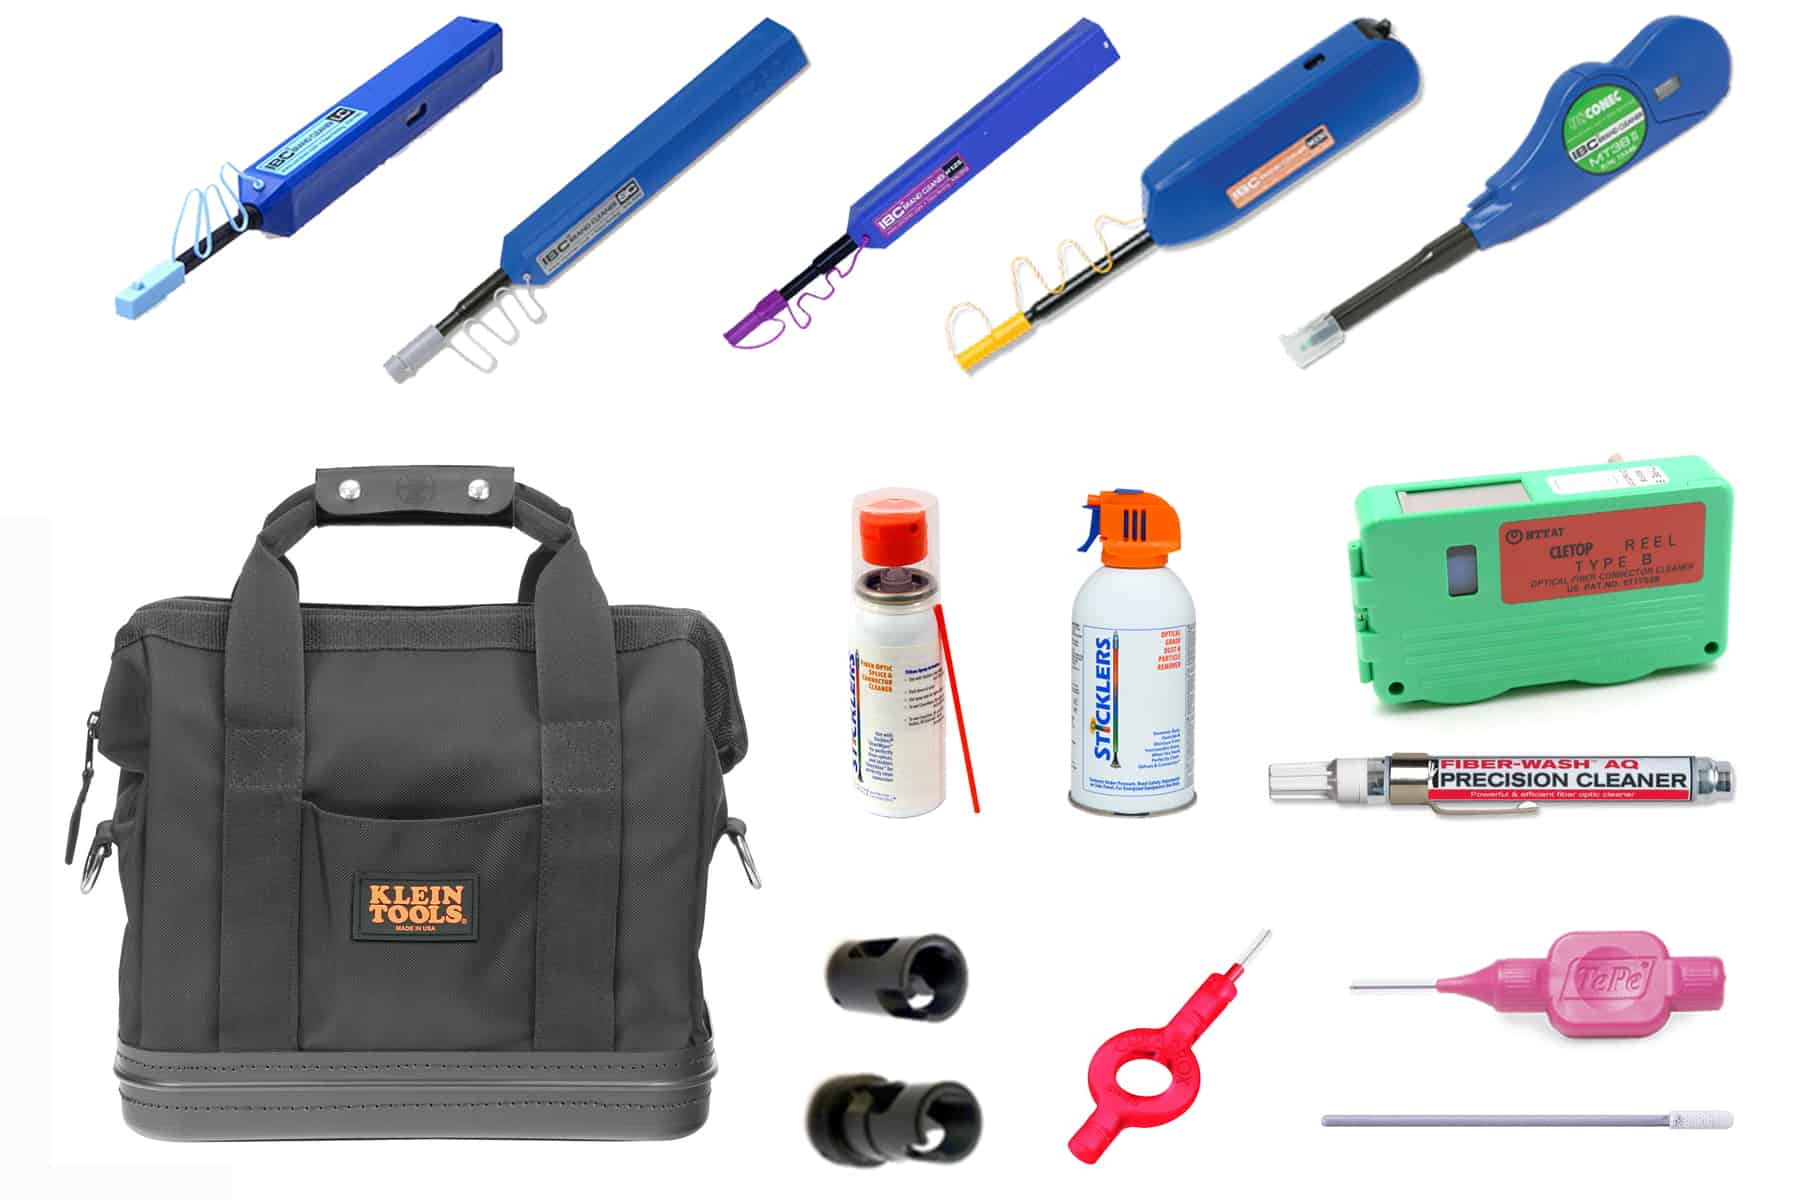 Fiber Optic Cleaning Kit - QODC 12 Connector Cleaning Tool Kit